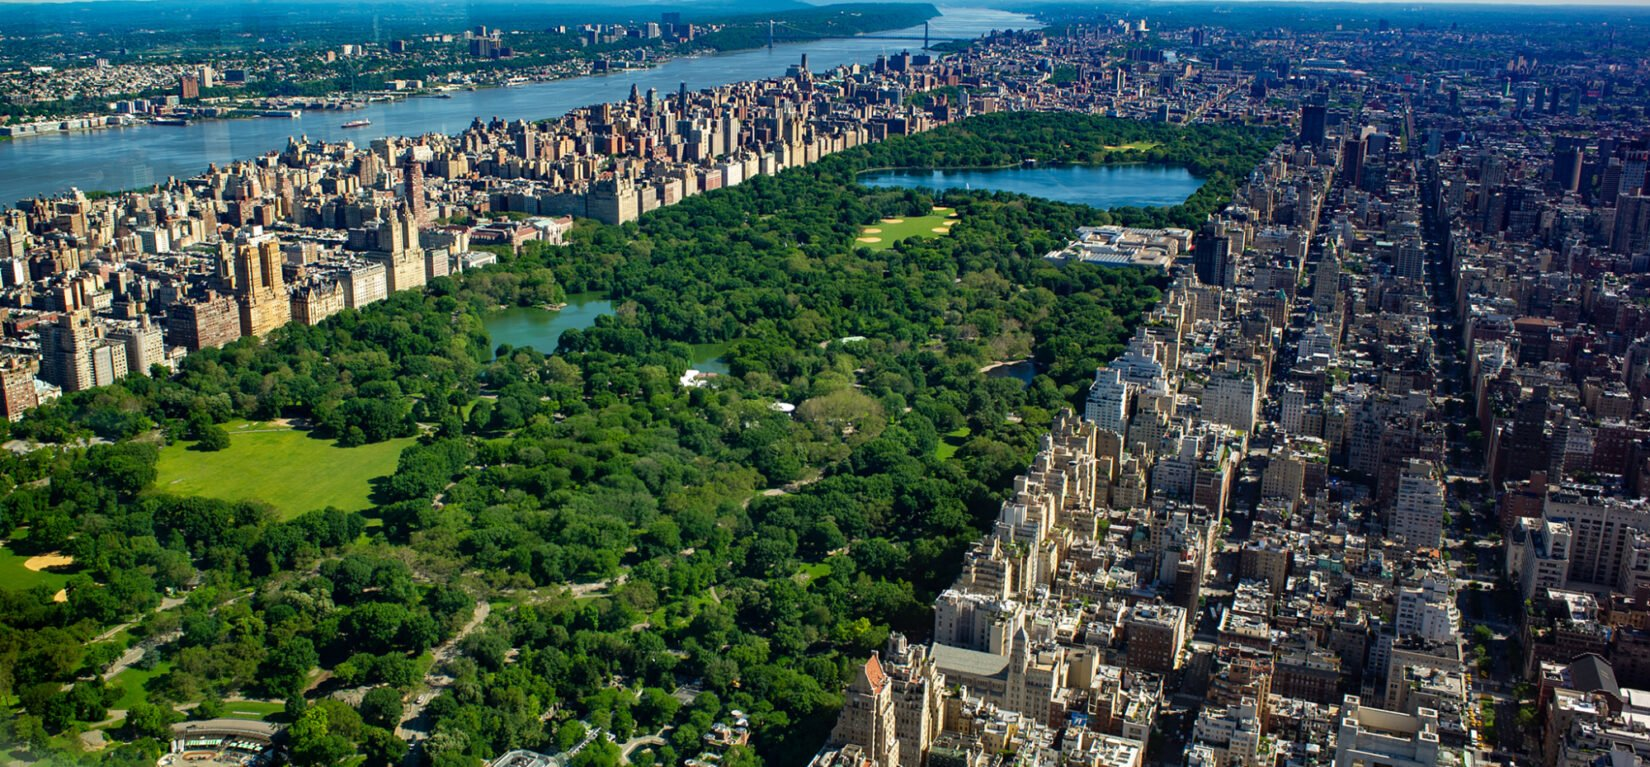 Aerial photo of Central Park in the summer